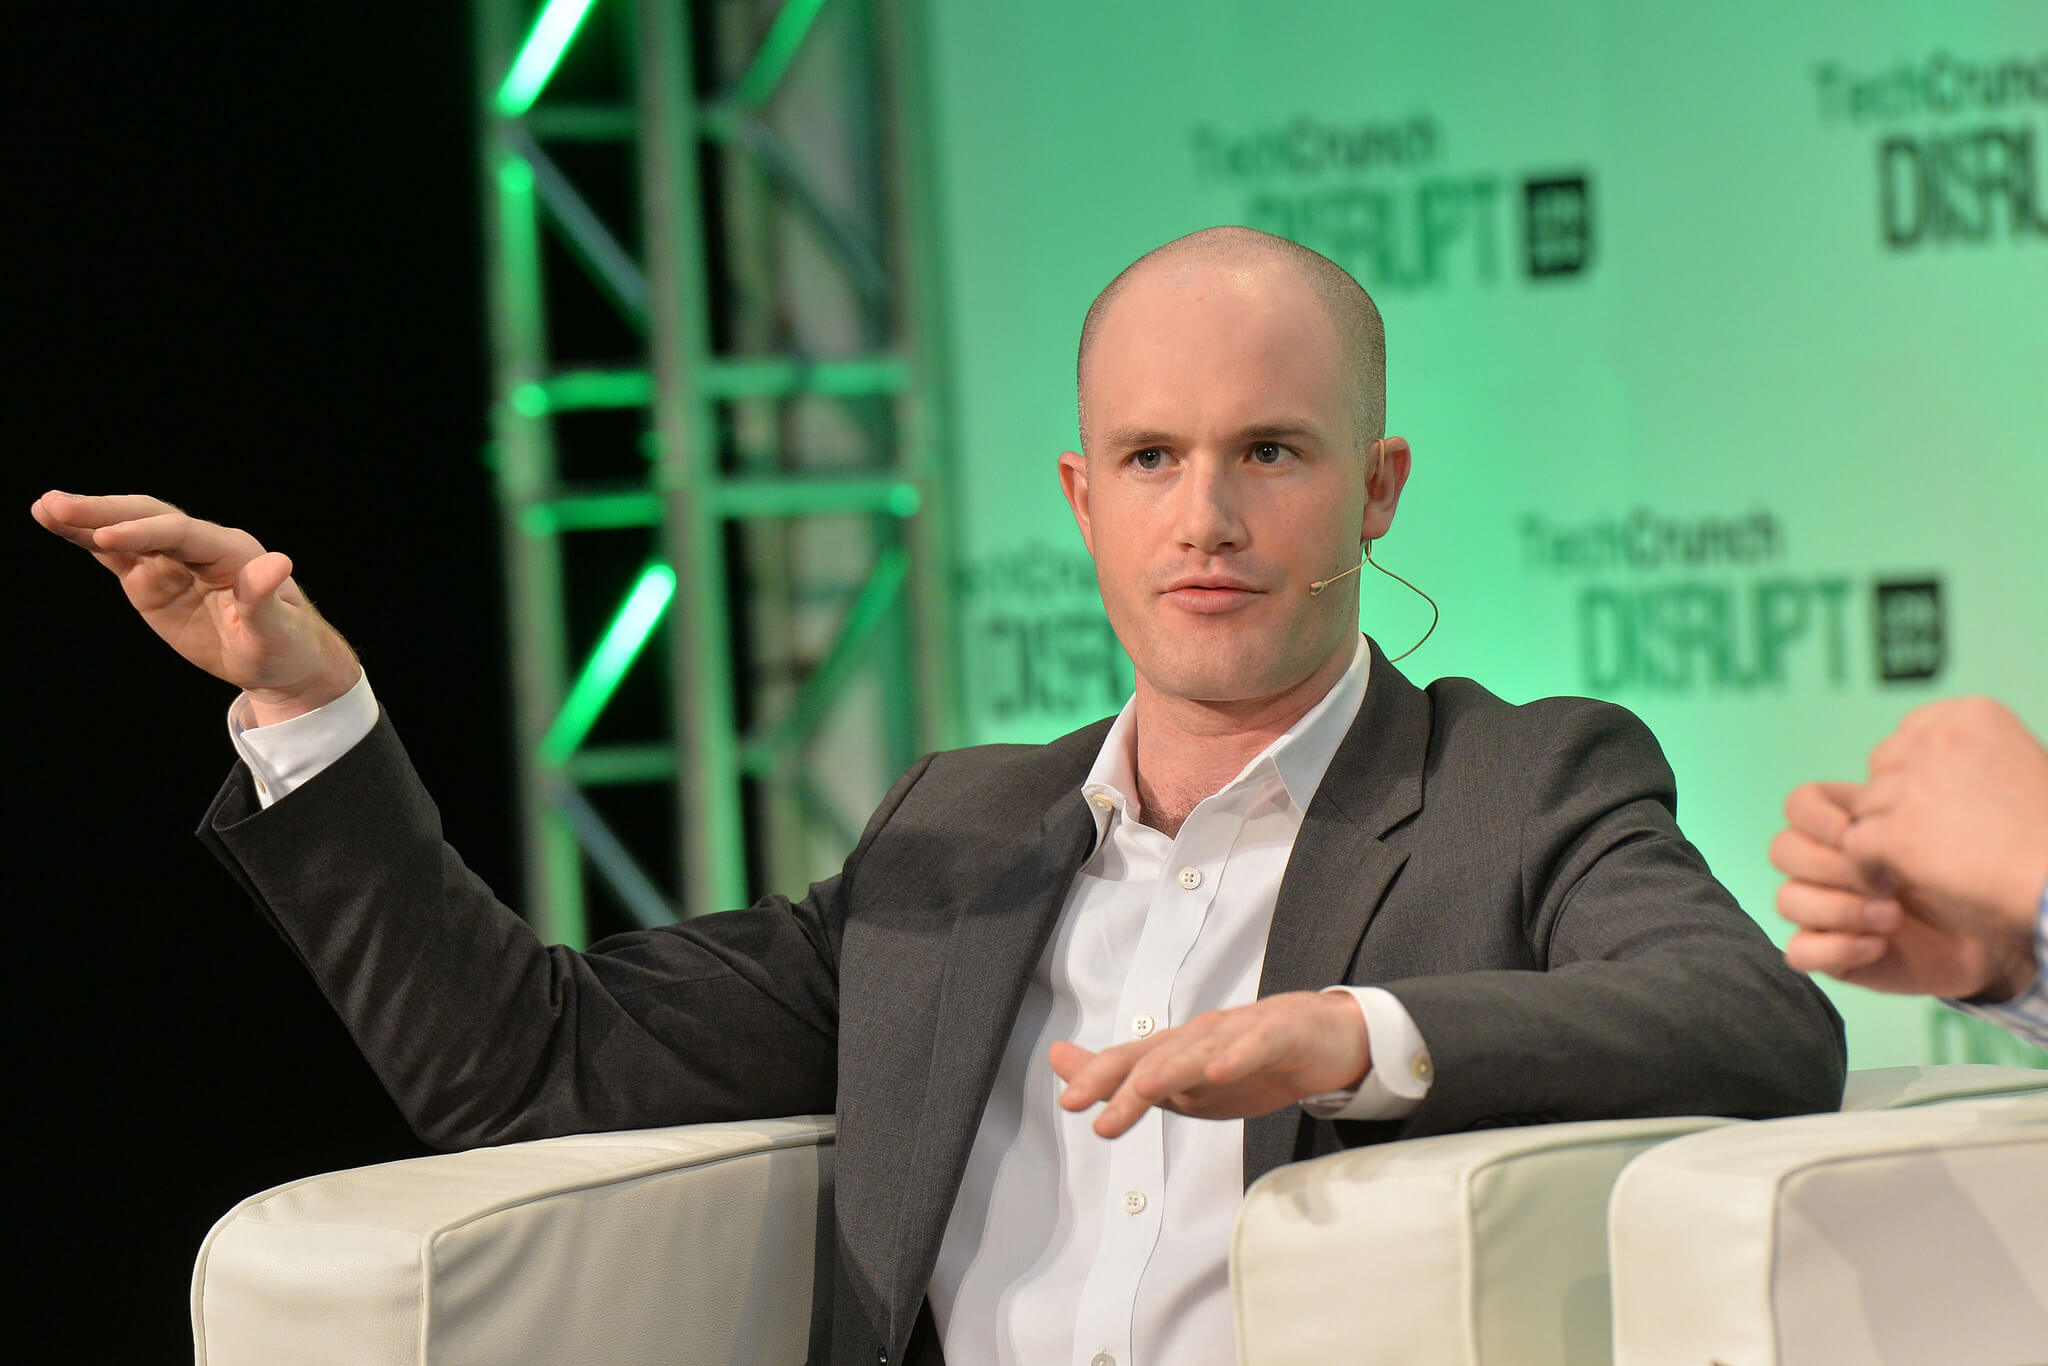 blogcertified-VODXS-COINBASE-CEO-TOPS-RIHANNA-IN-FORTUNE- 40-UNDER-40-LIST